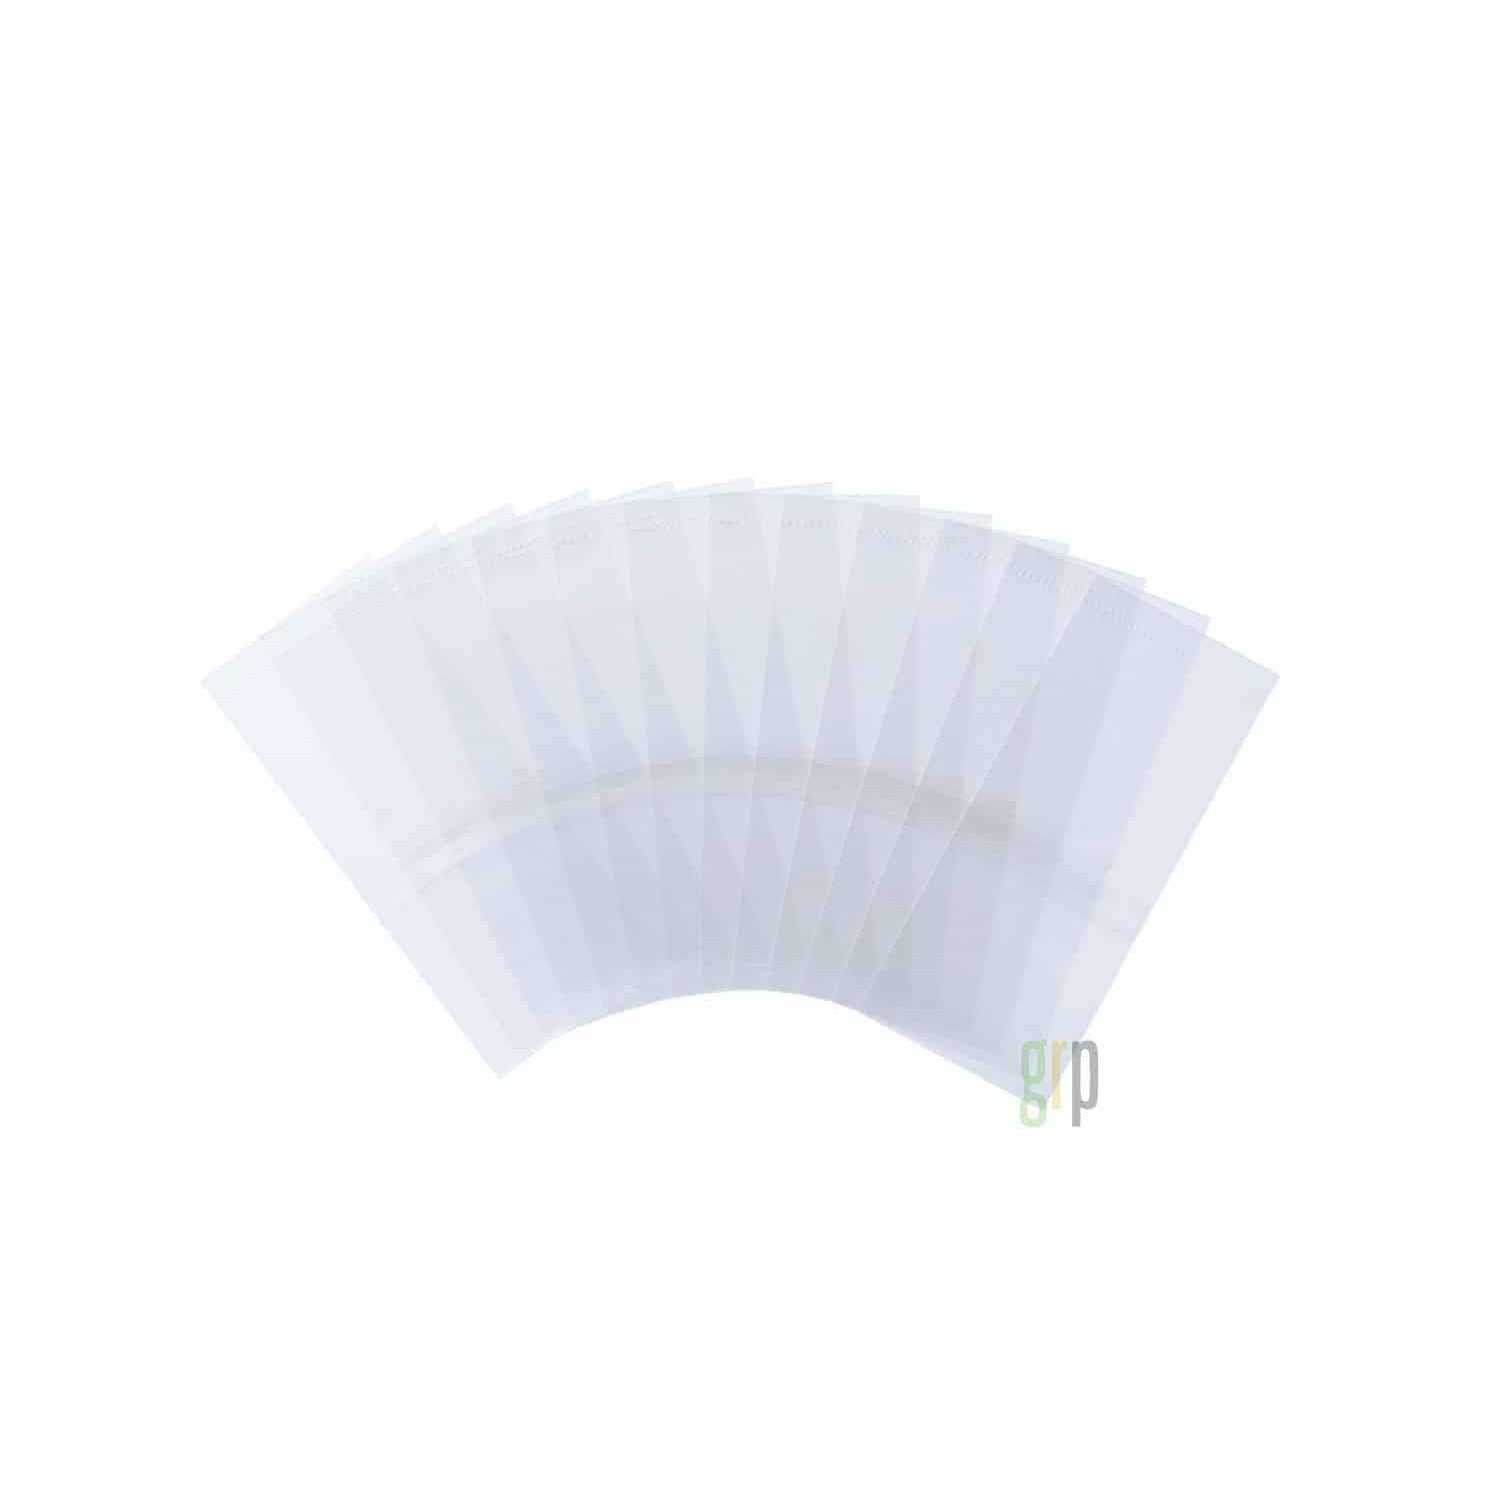 30/60 Dram Clear Tamper Evident Bands  (250 QTY)